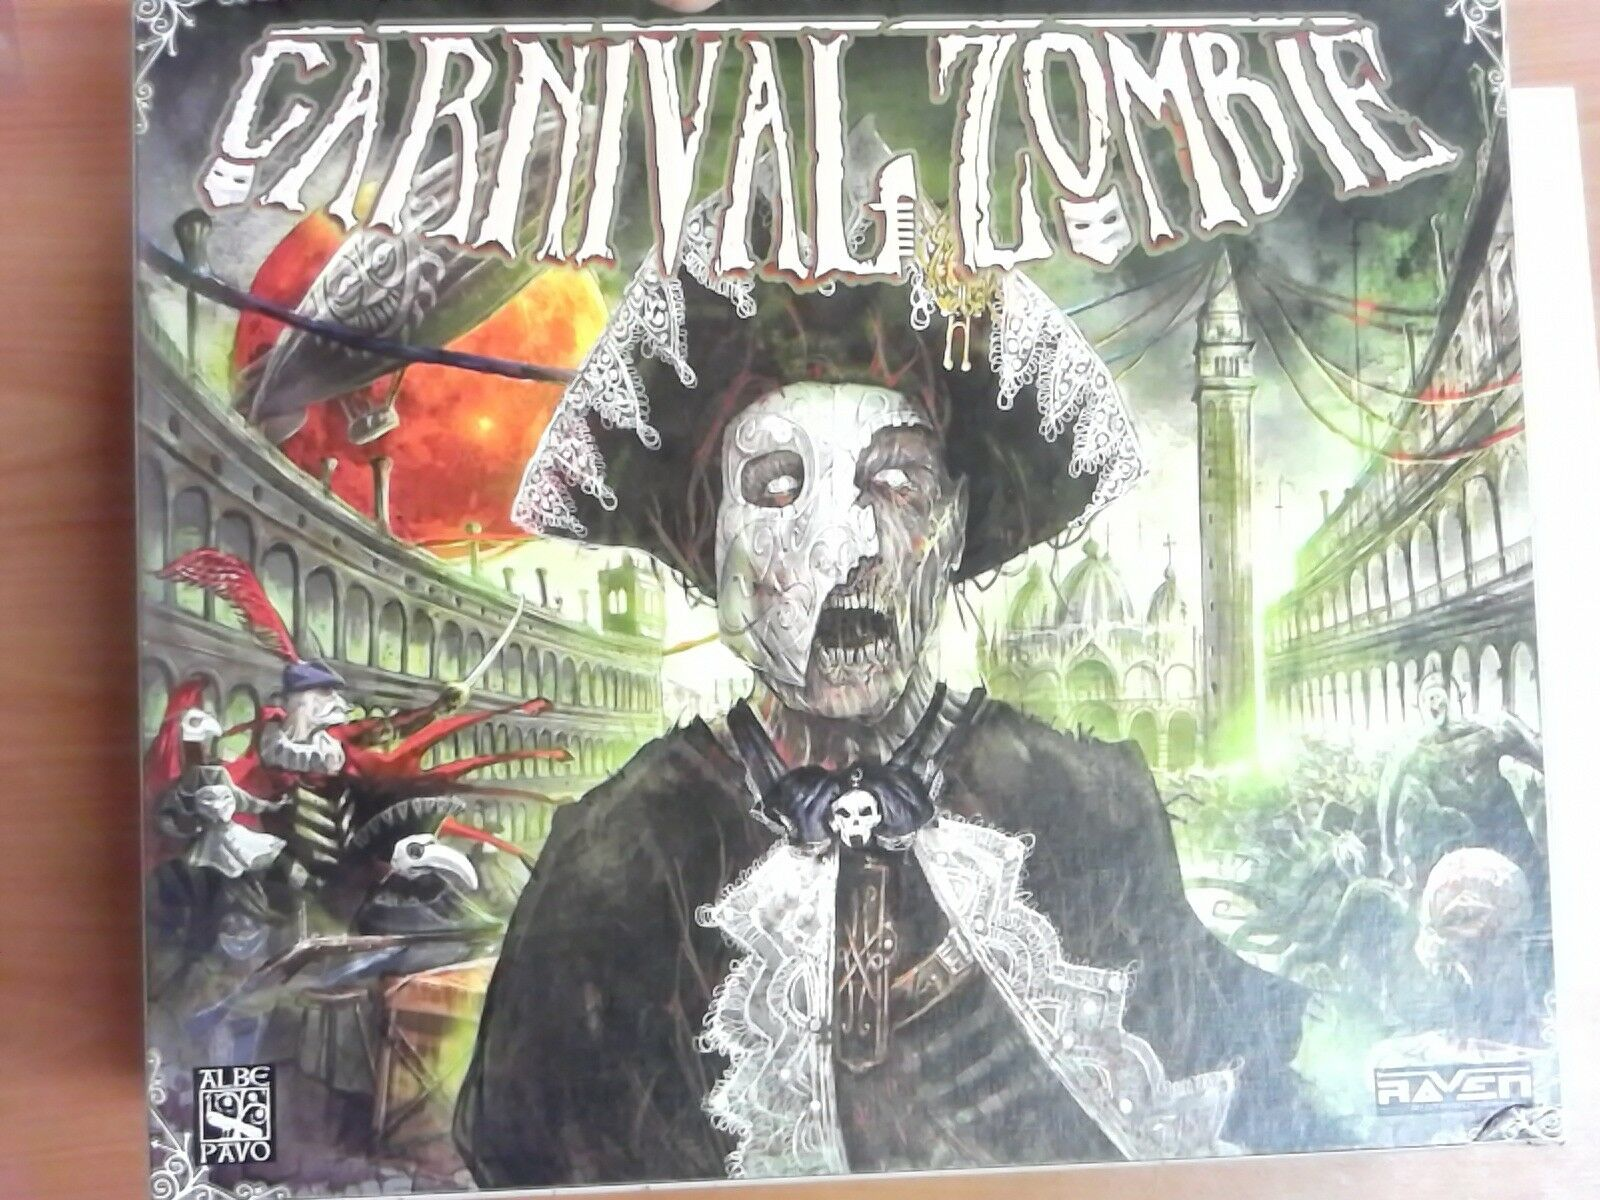 Carnival Zombie Board Game Contents Verified, All Present